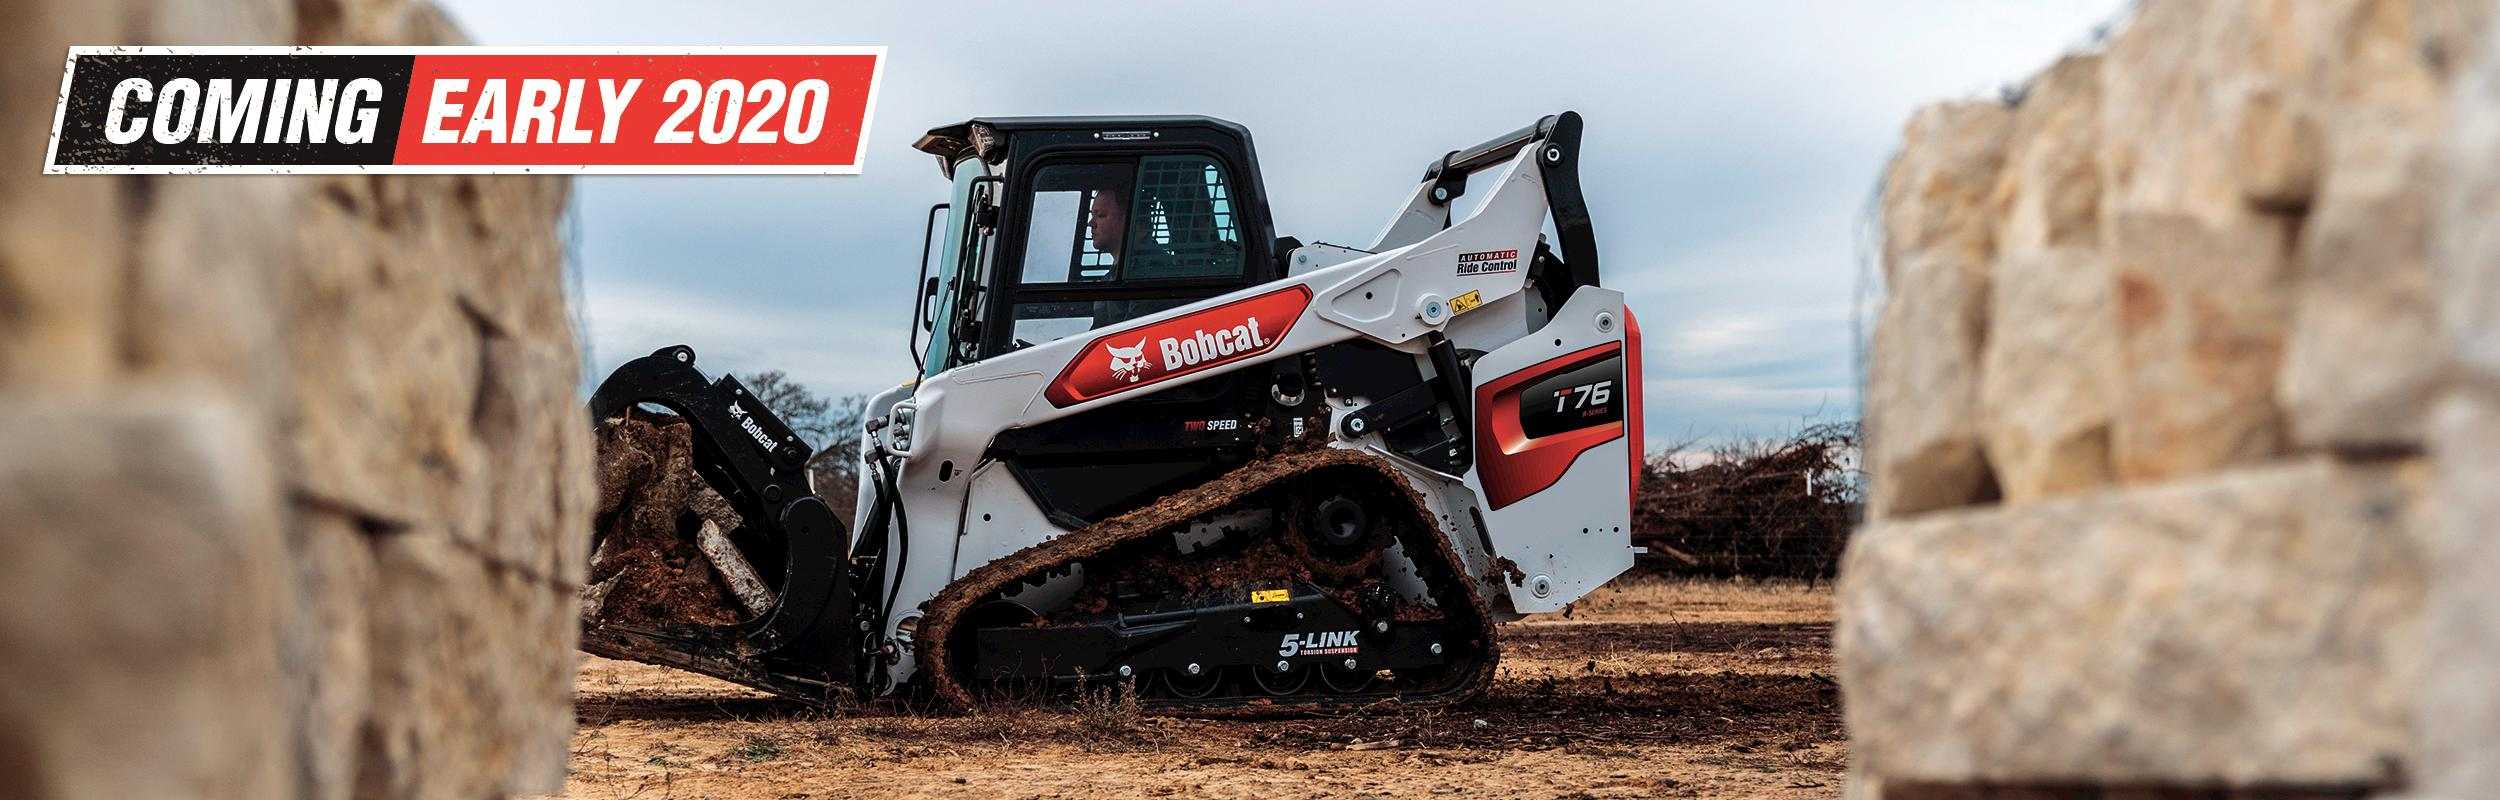 New Bobcat R-Series Compact Track Loader Coming In 2020